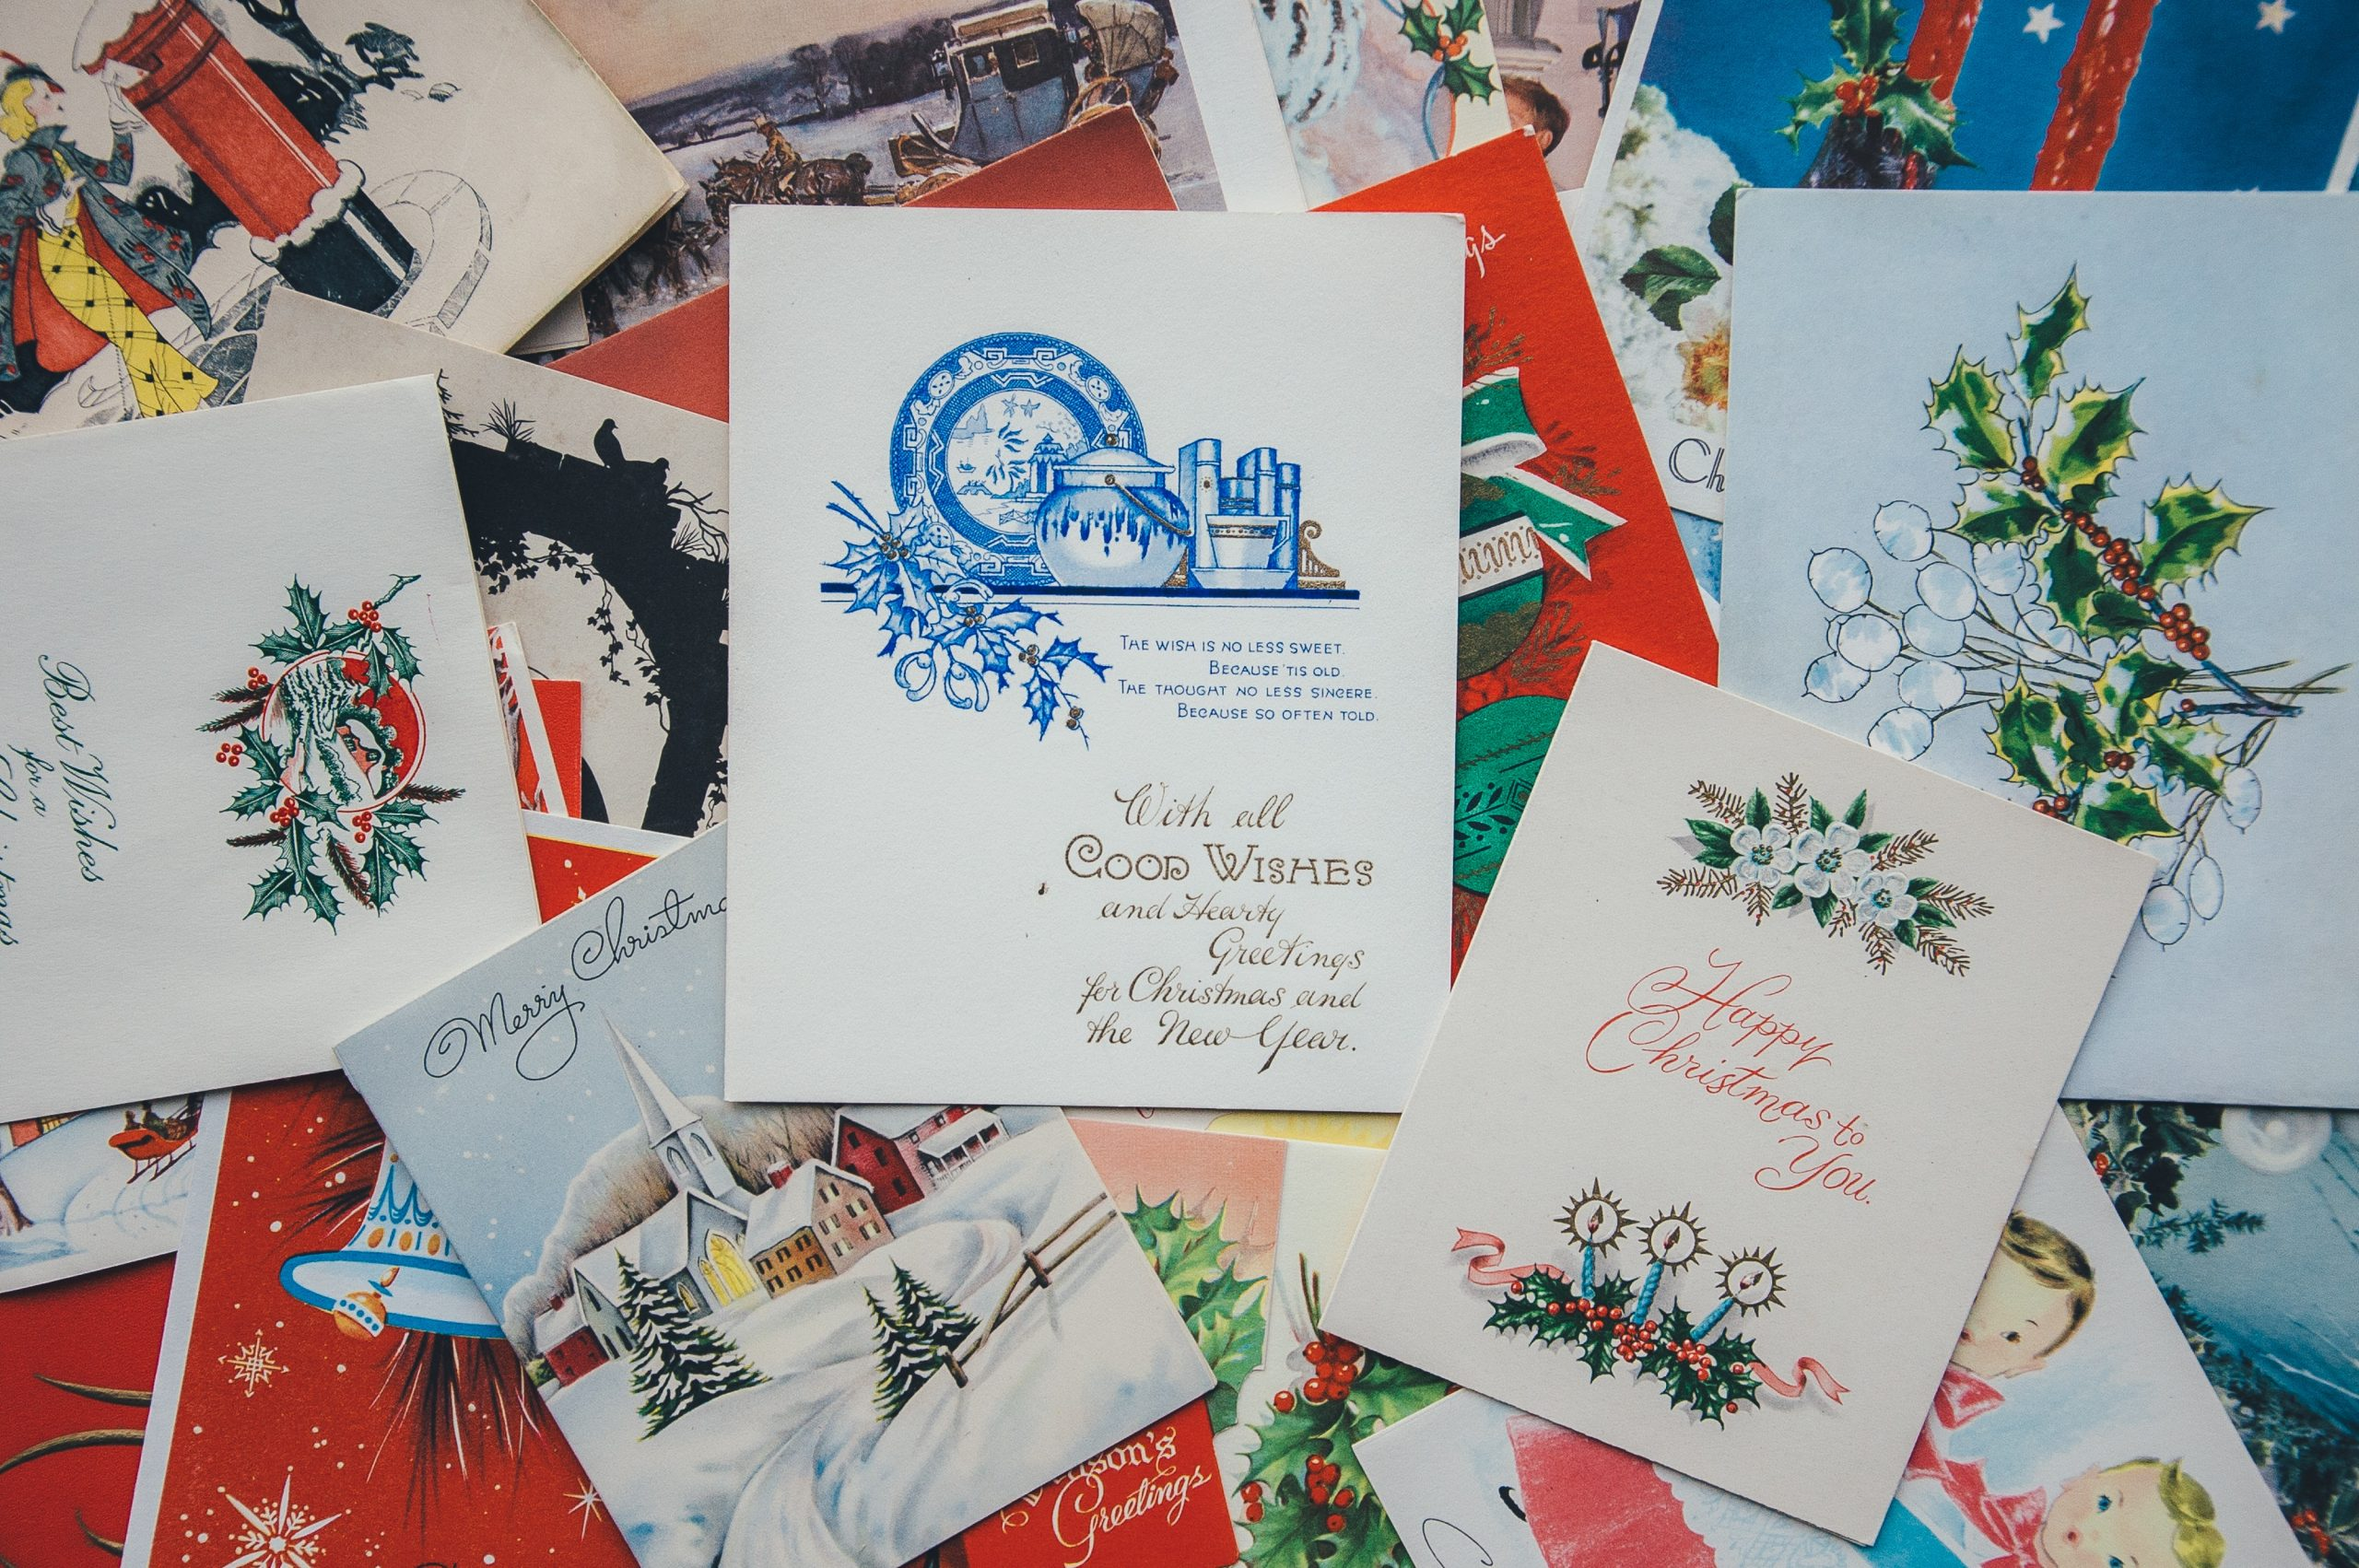 Recycled Holiday Cards Benefit St. Judes Ranch